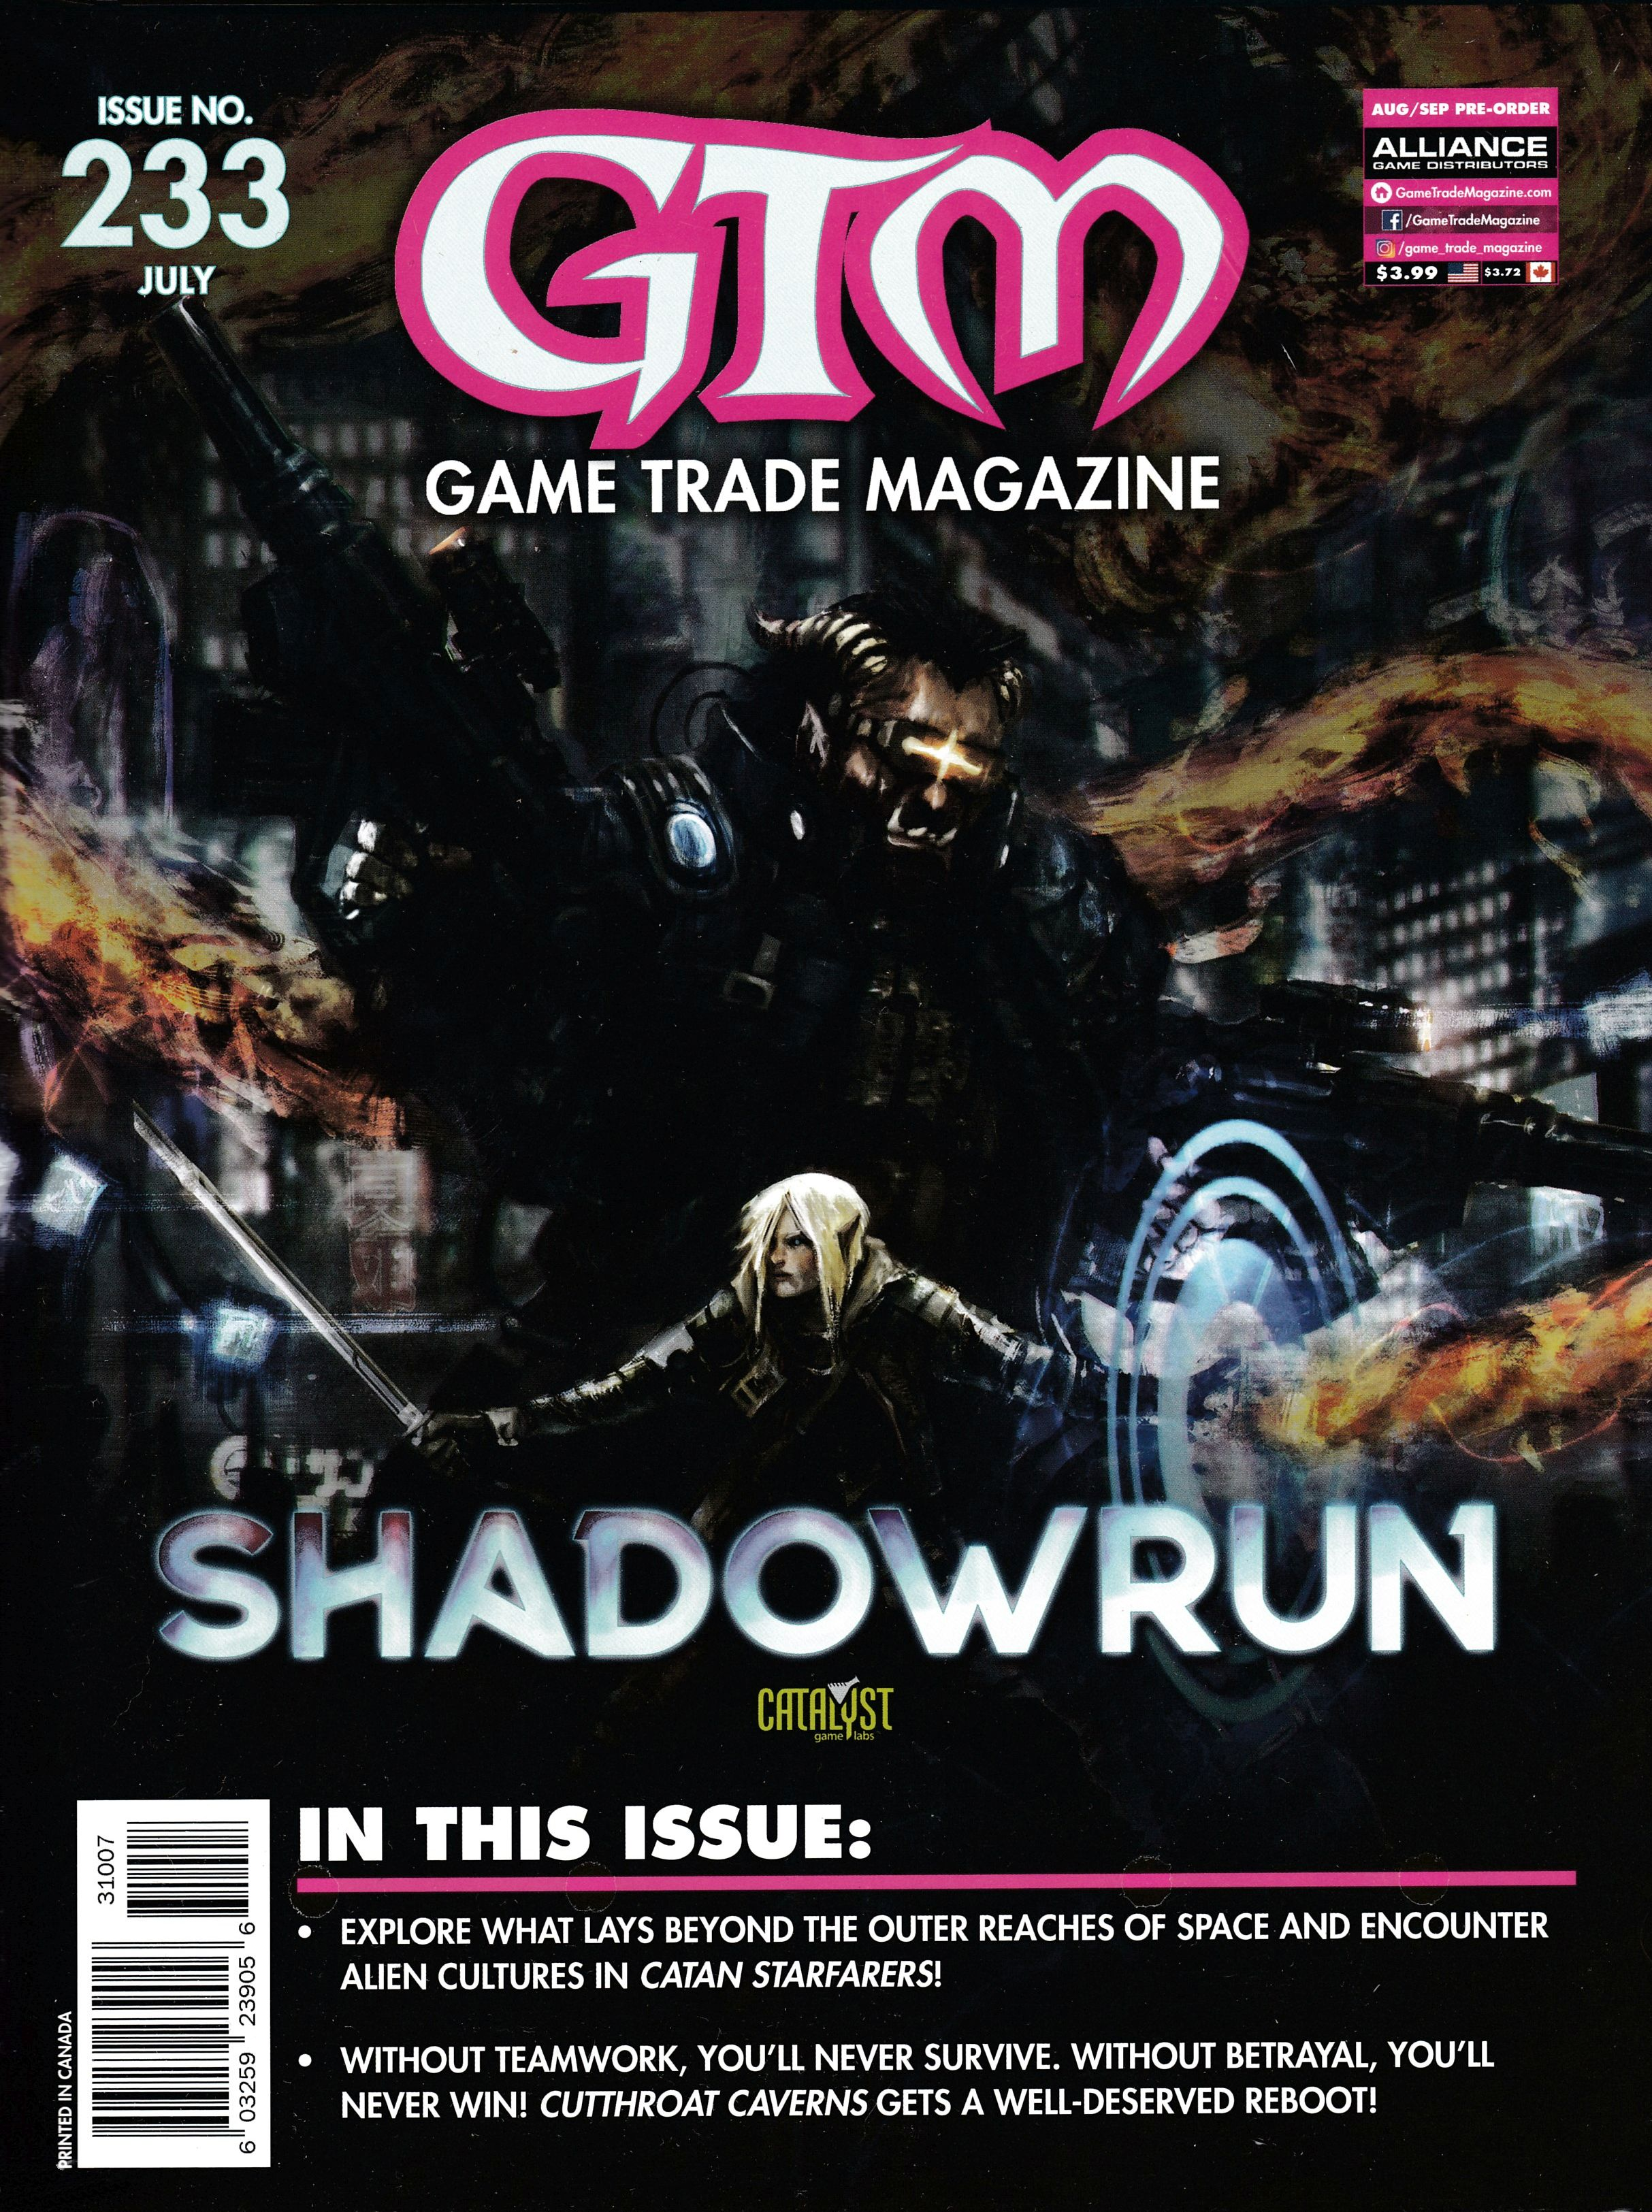 Game Trade Magazine #233 Sale Copy